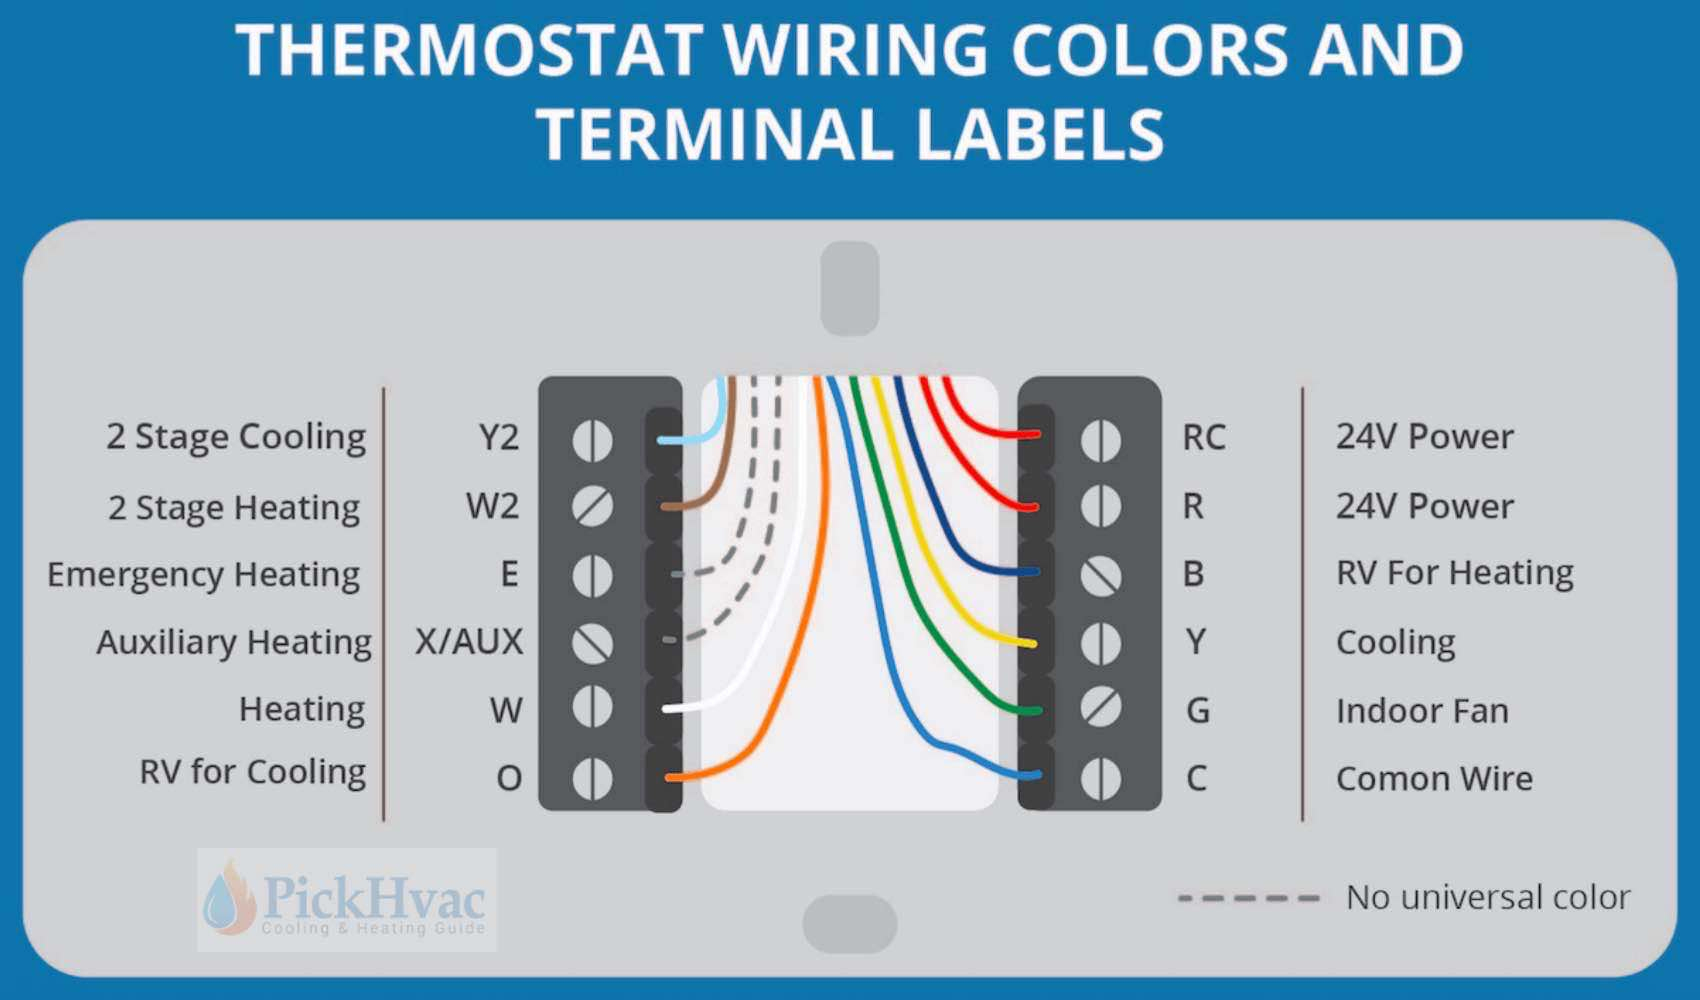 In-Depth Thermostat Wiring Guide For Homeowners - Nest E Wiring Diagram For Heating And Central Air